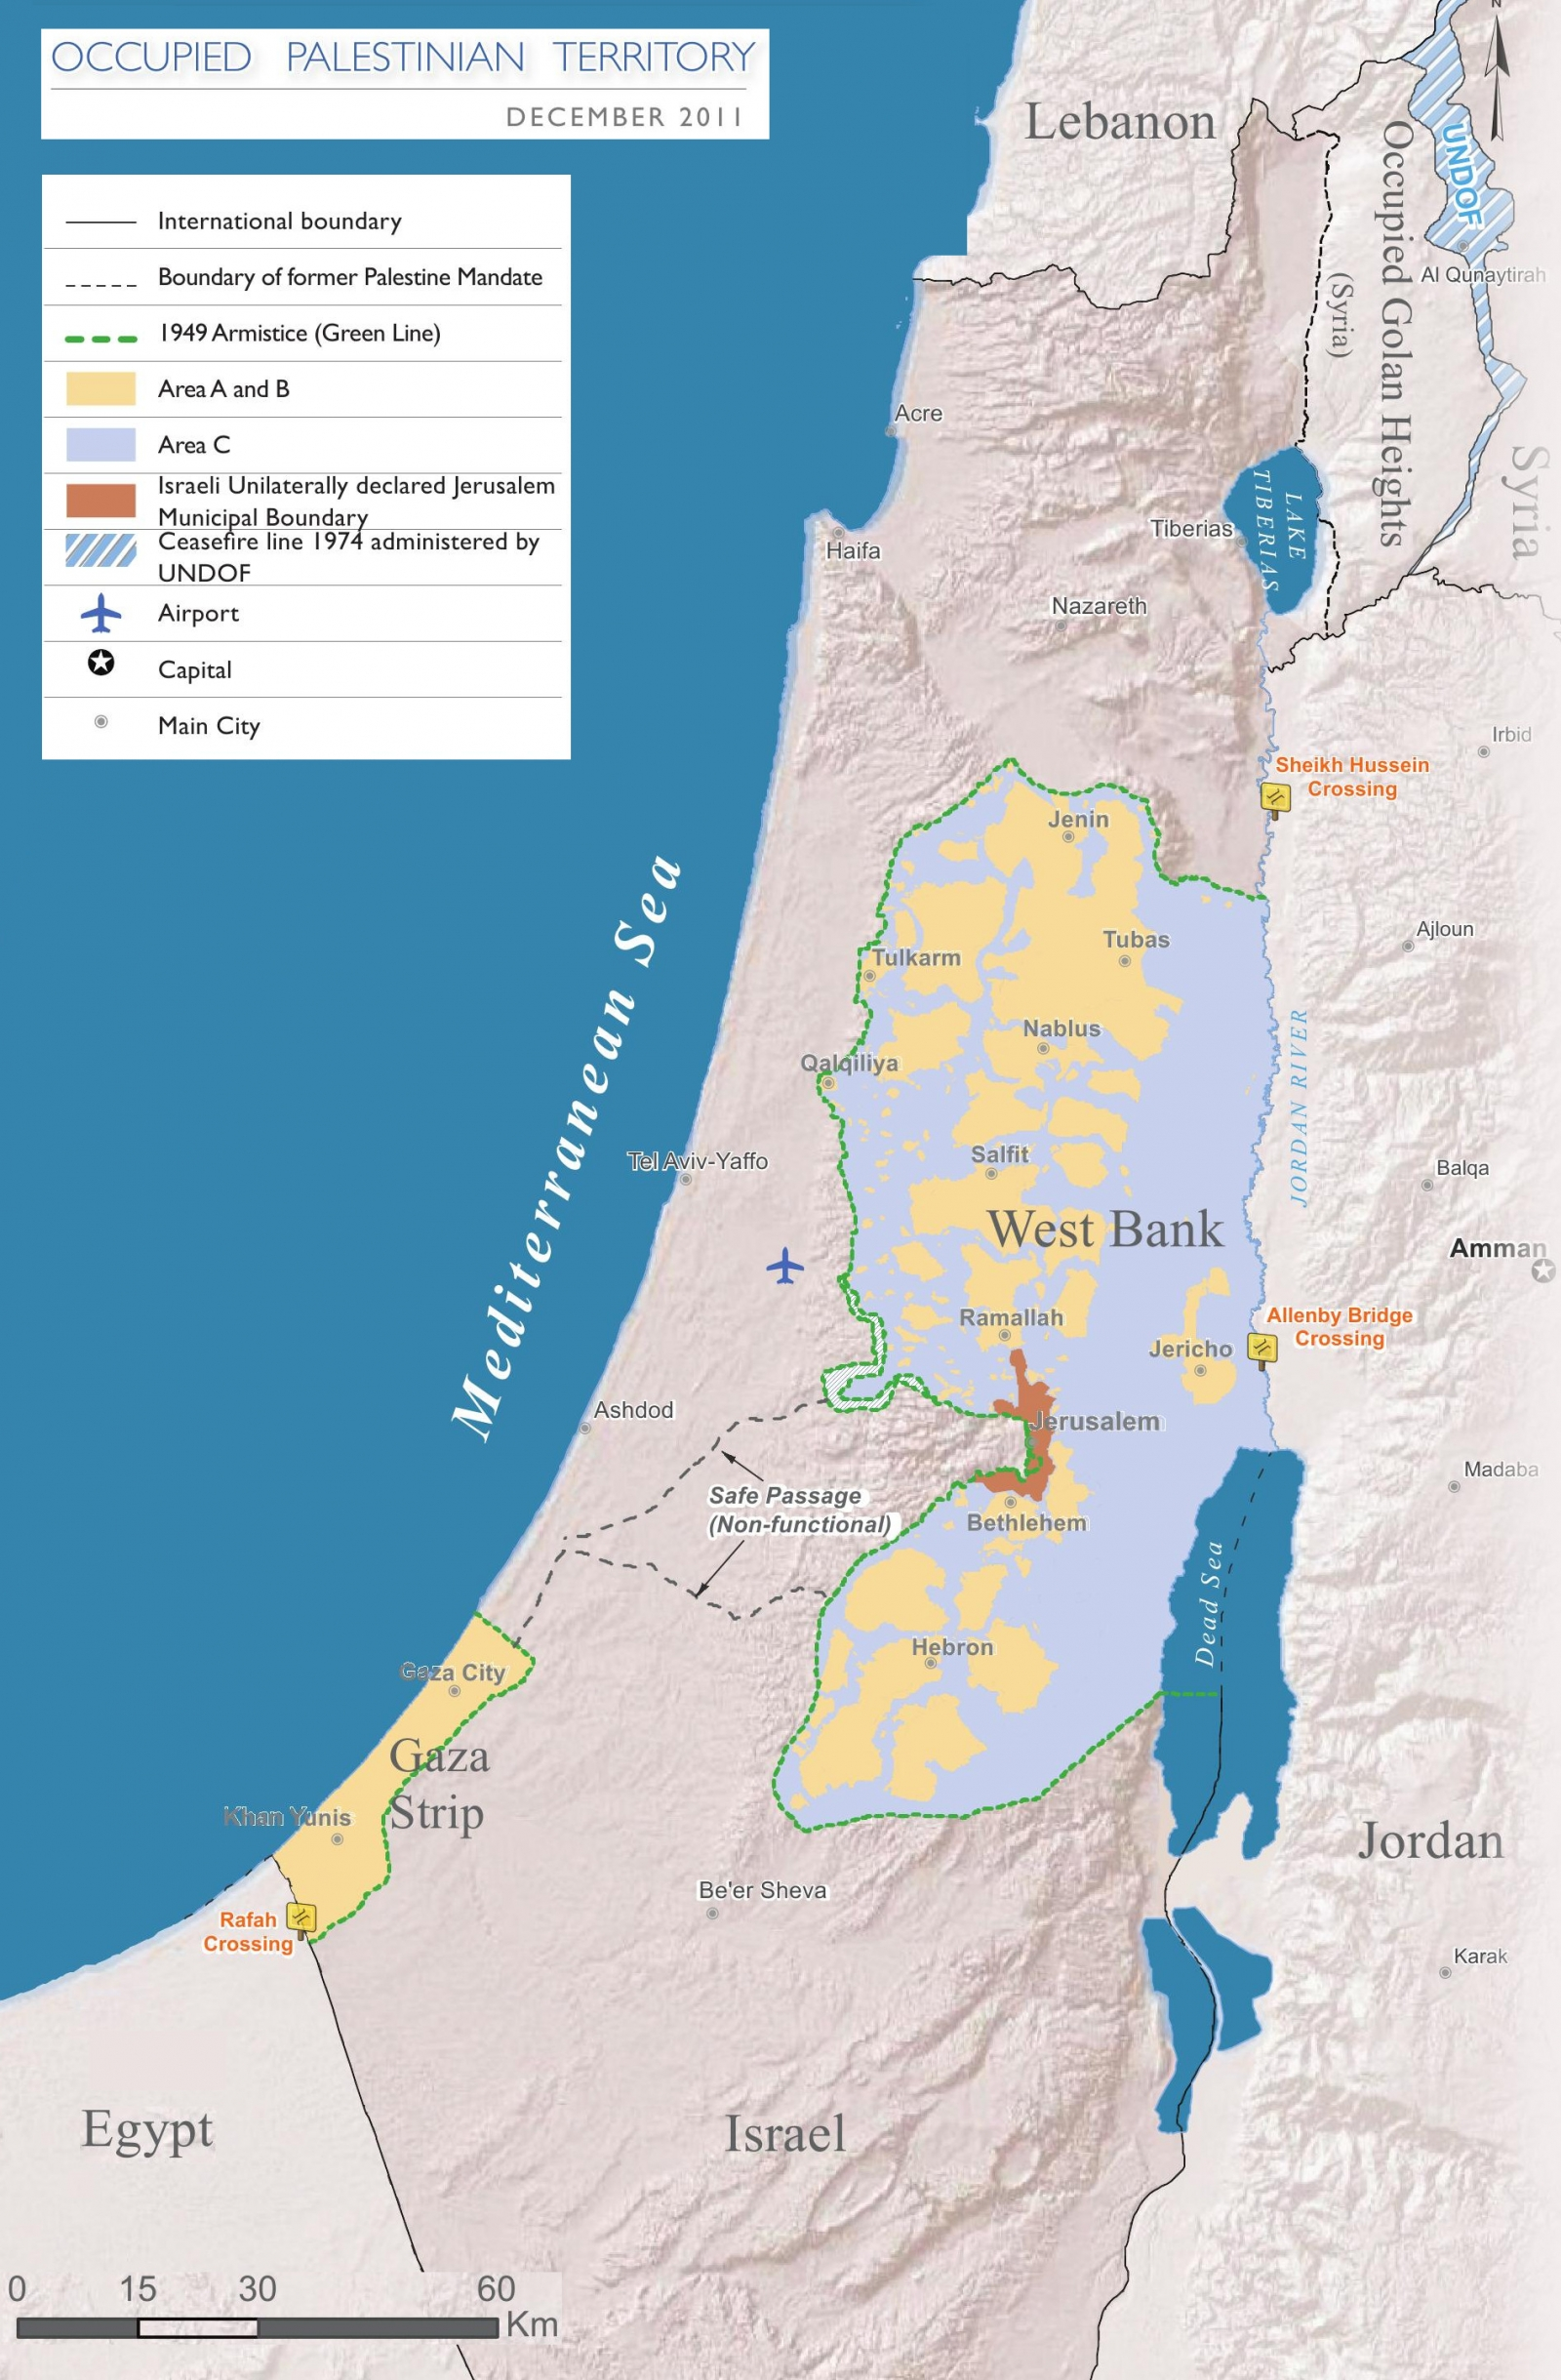 Occupied Palestinian Territories map (2011)